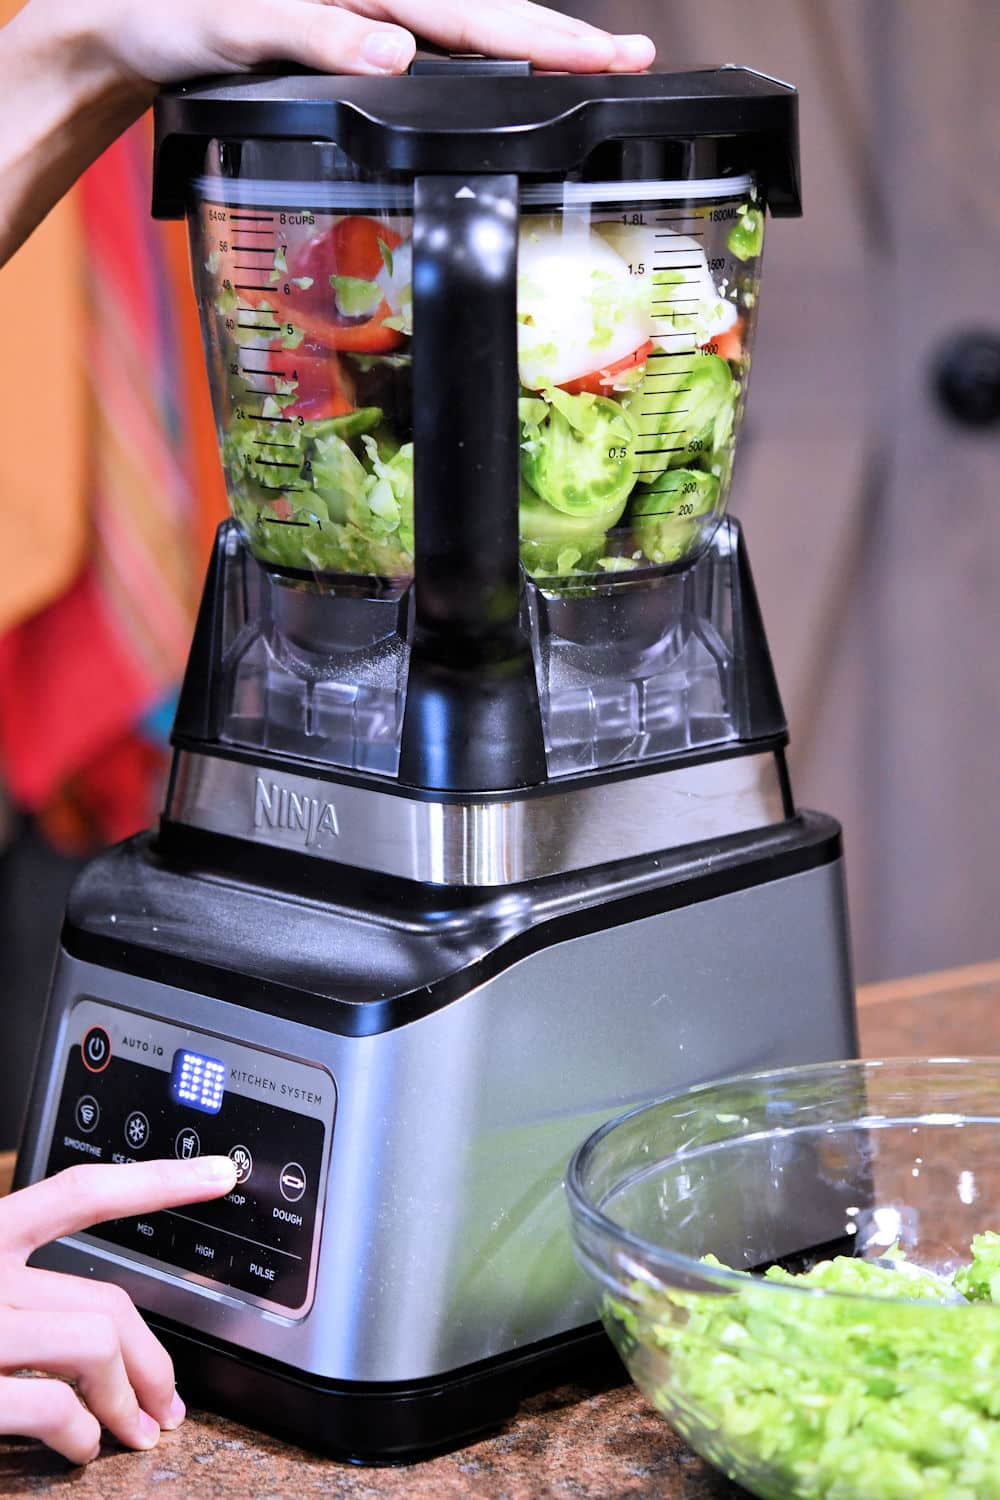 processing the raw vegetables in a food processor